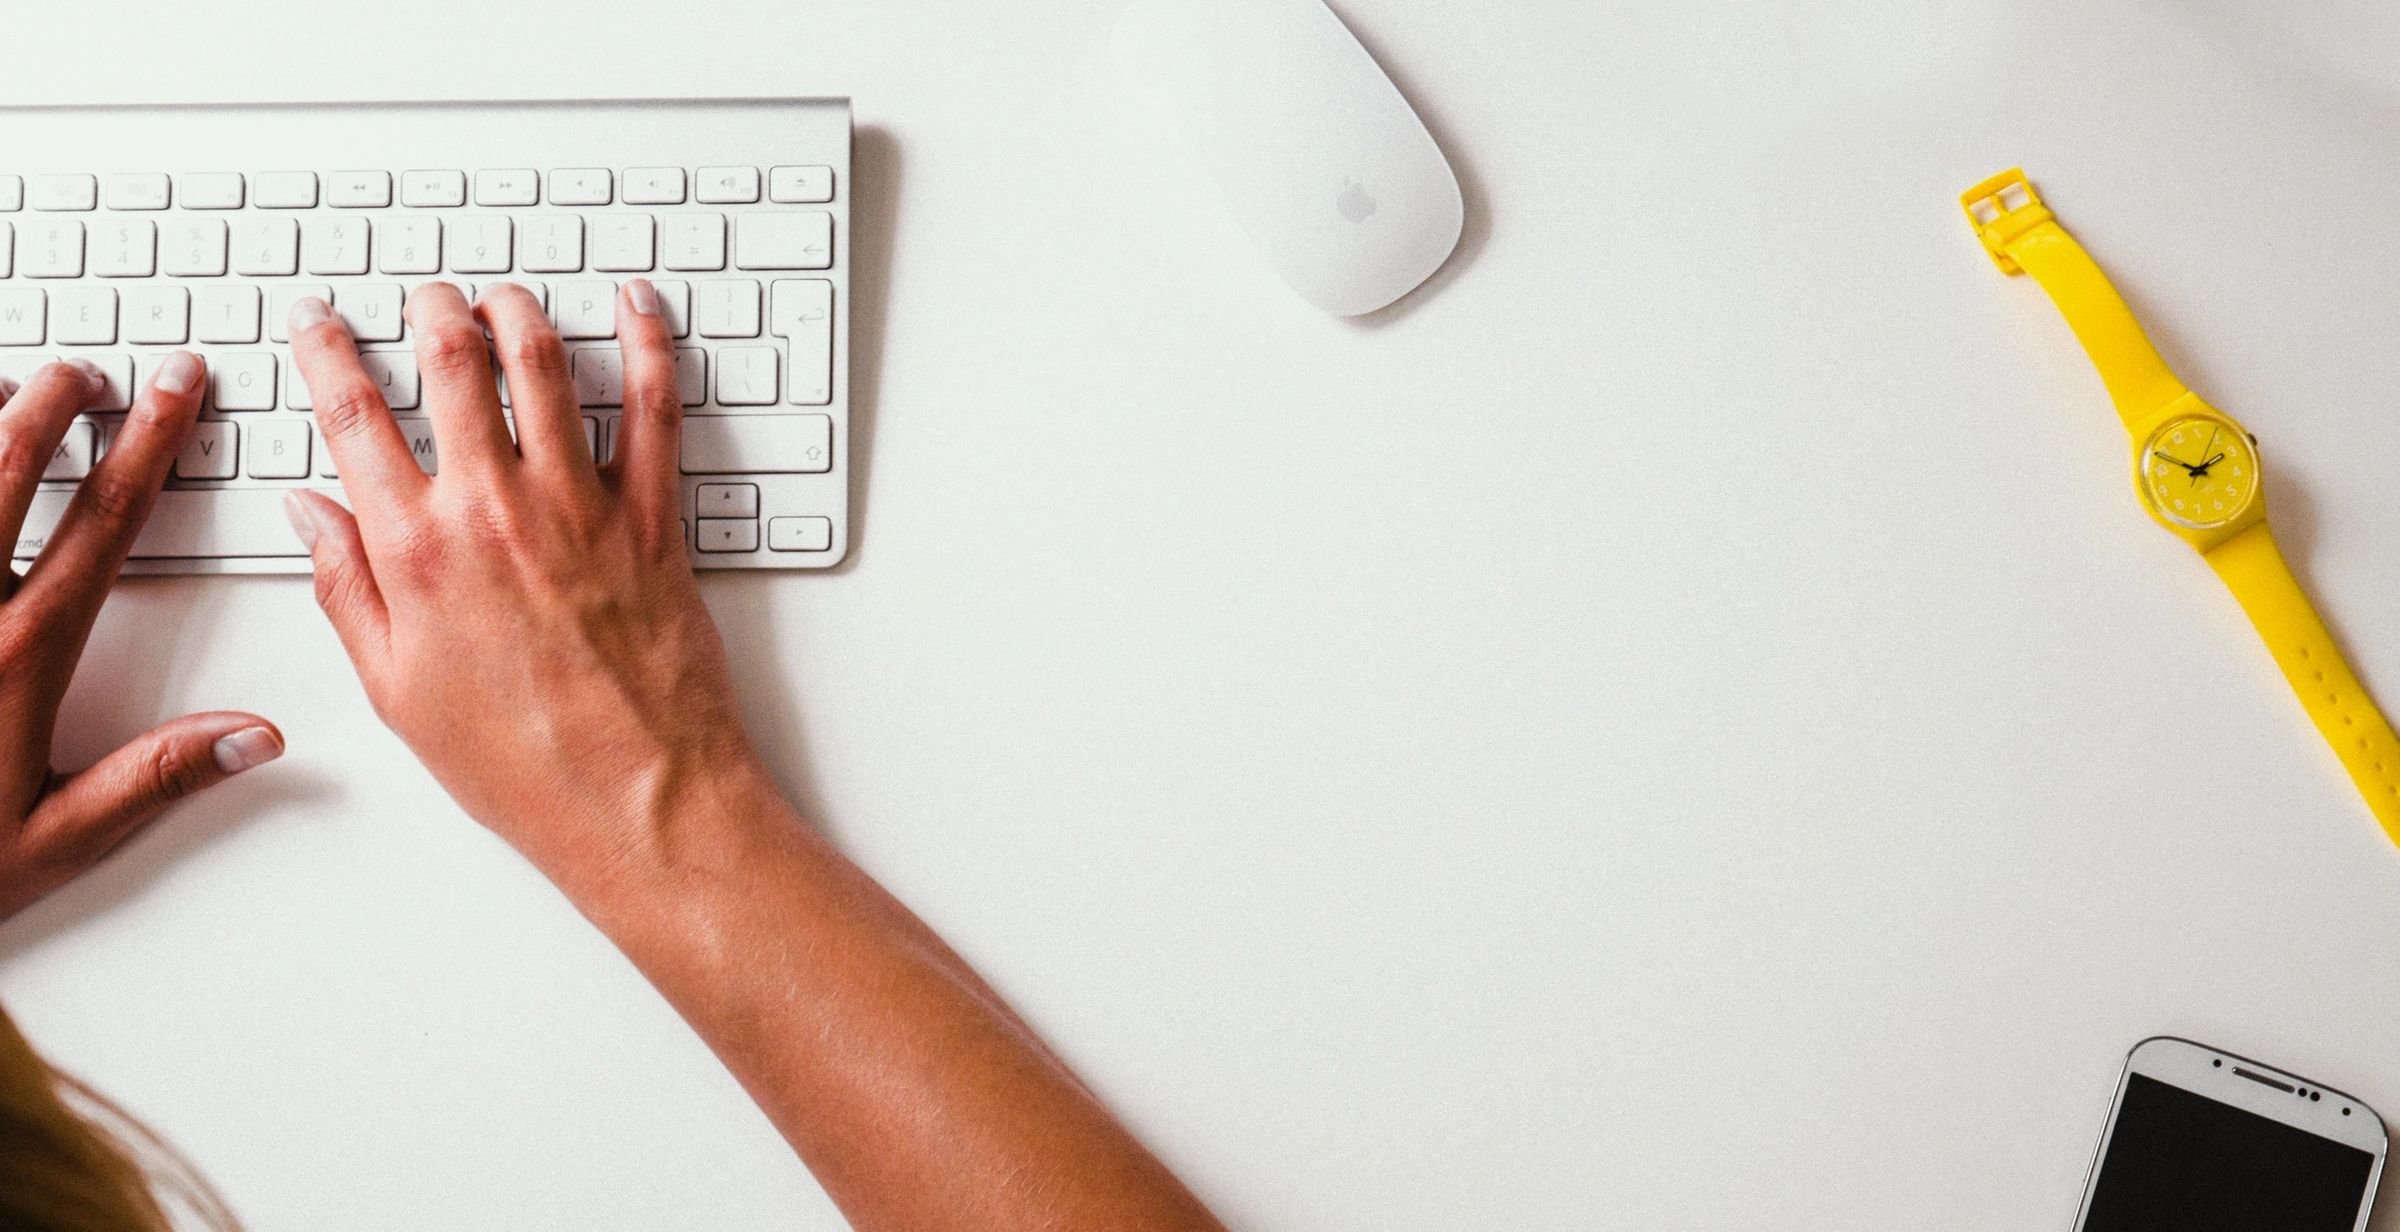 6 Genuine Work From Home Jobs To Consider